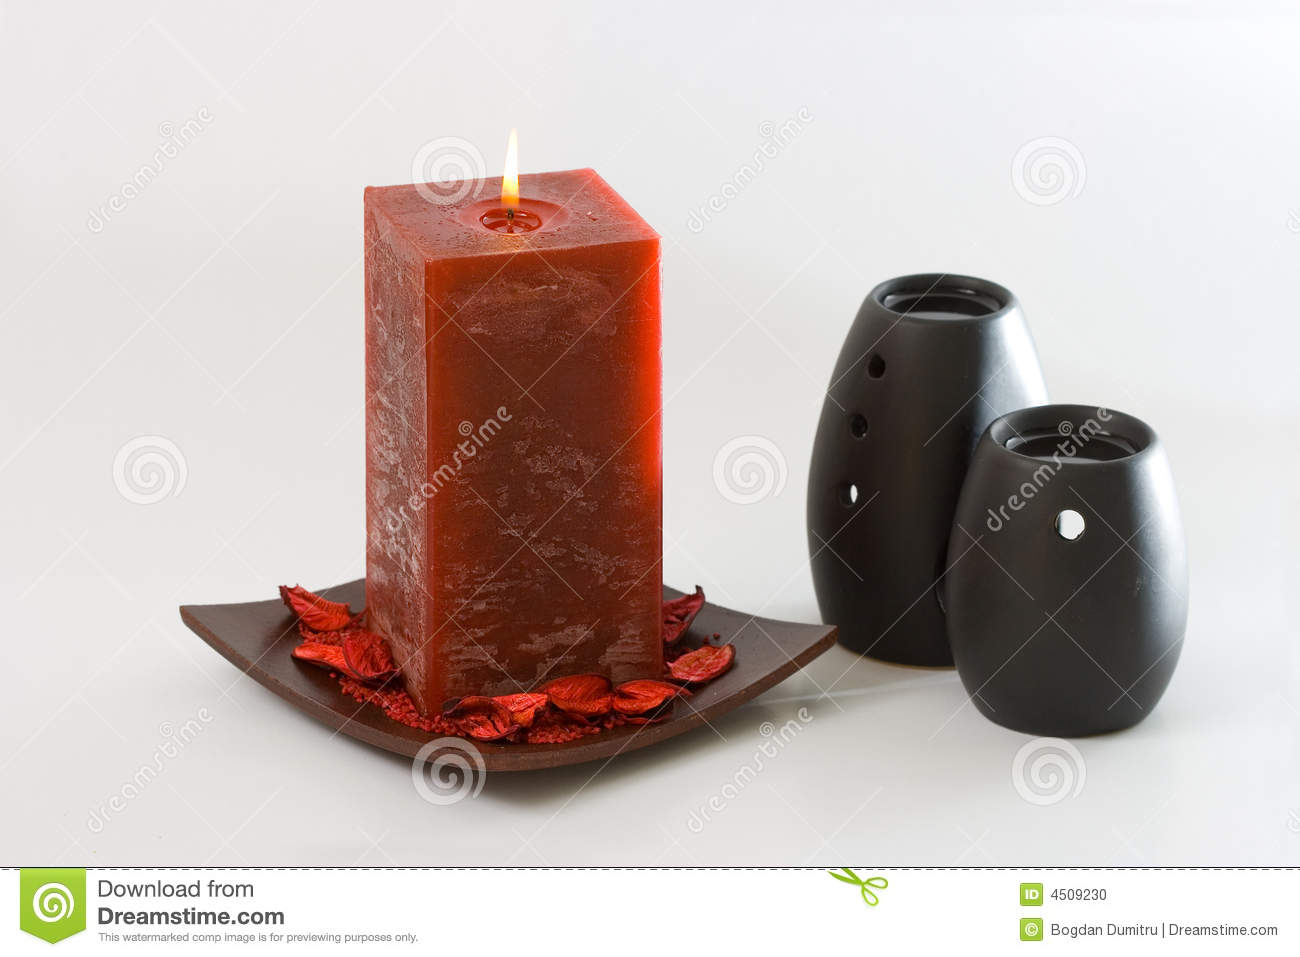 Red Scented Candle And Black Ceramic Aromatic Oil Burners Isolated On